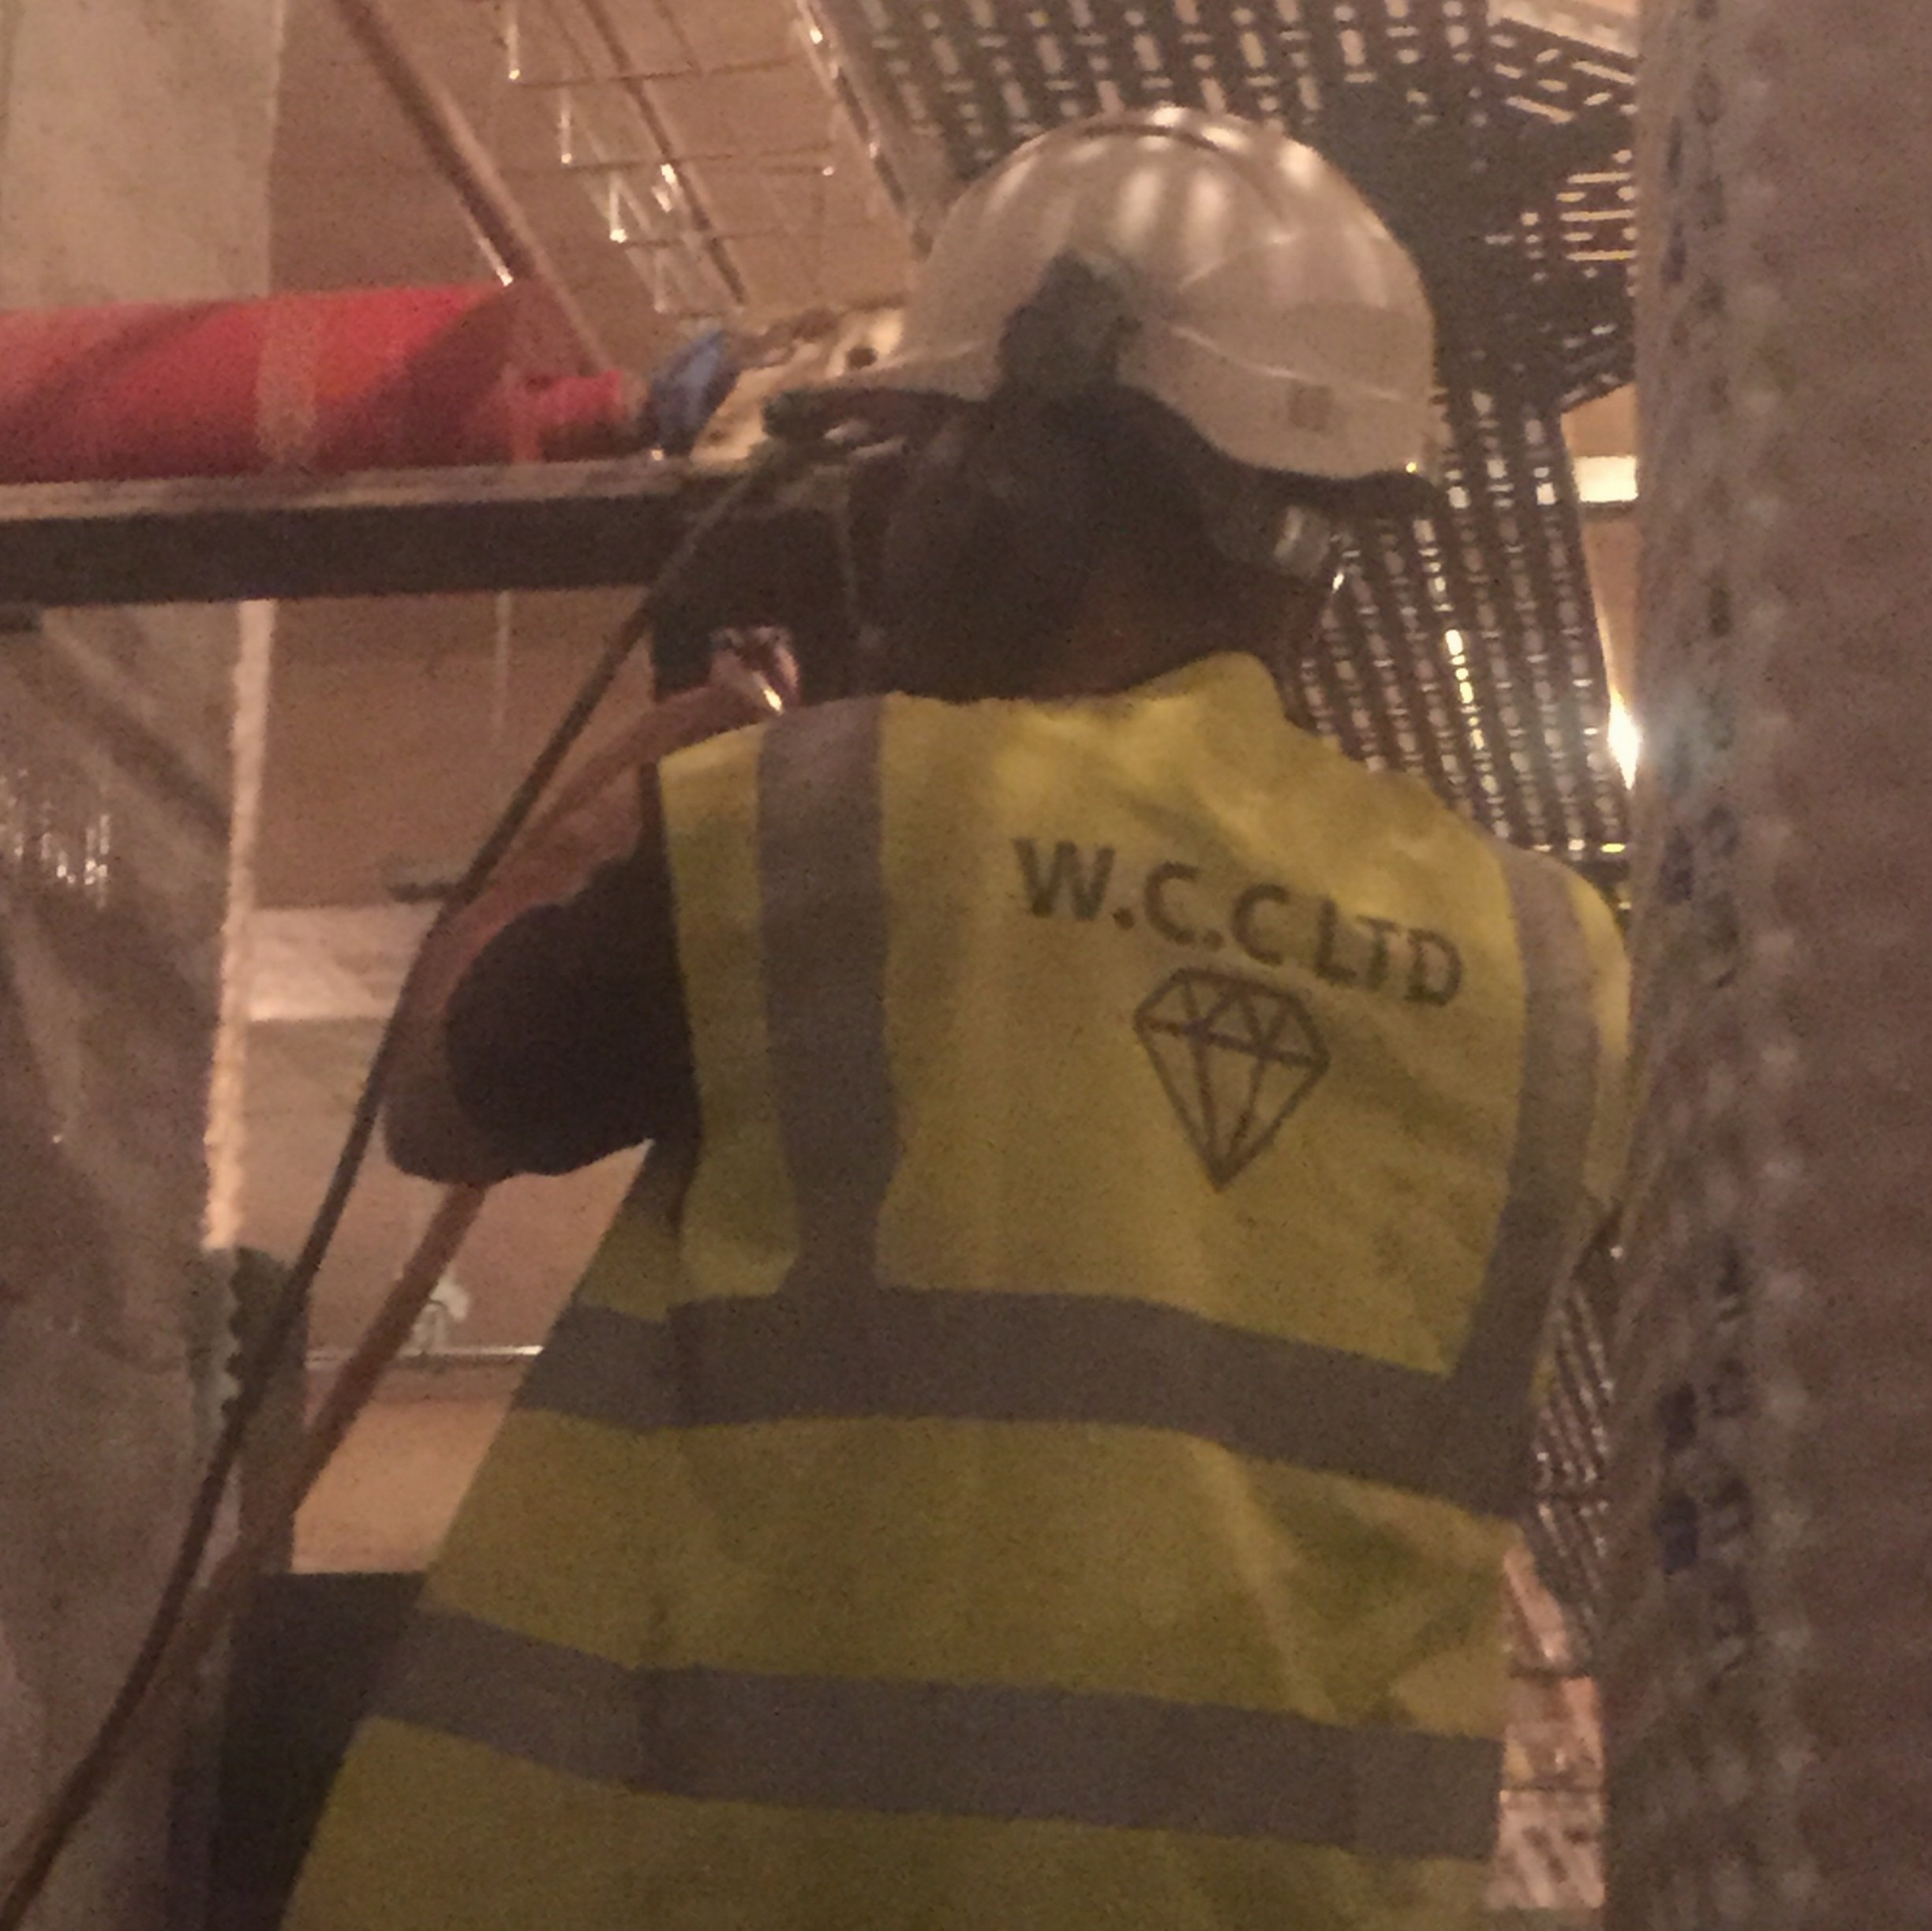 wcc Ltd core drilling services into a wall